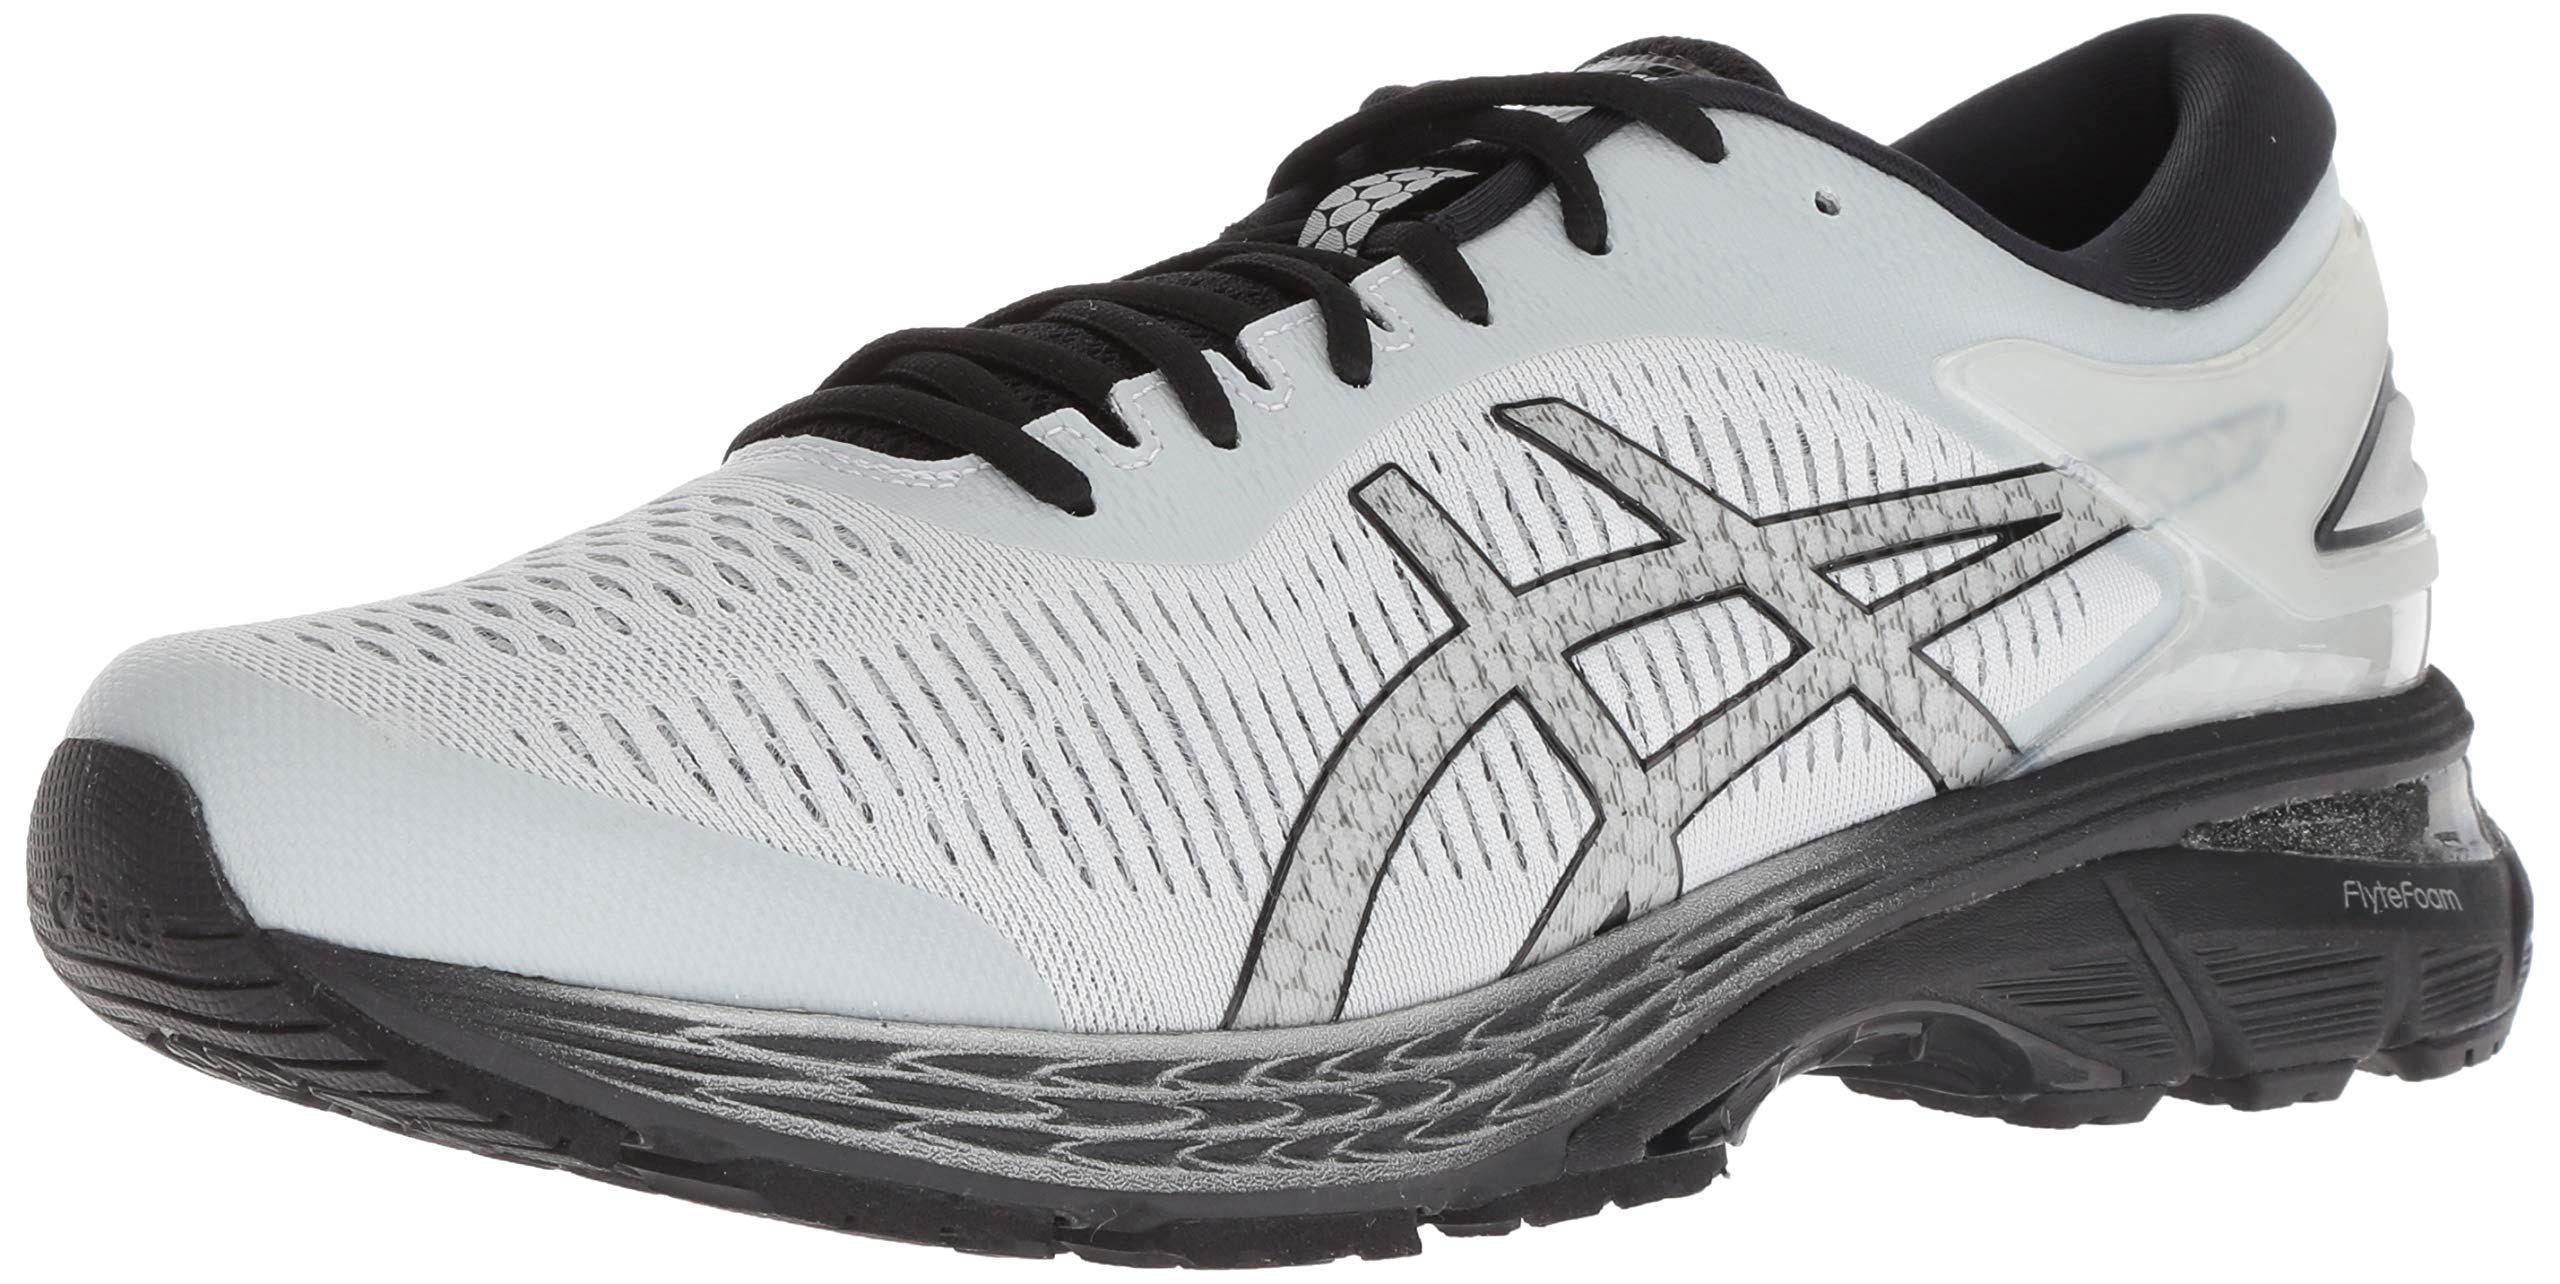 Asics Men S Gel Kayano 25 Running Shoes Running Shoes For Men Asics Men Running Shoes